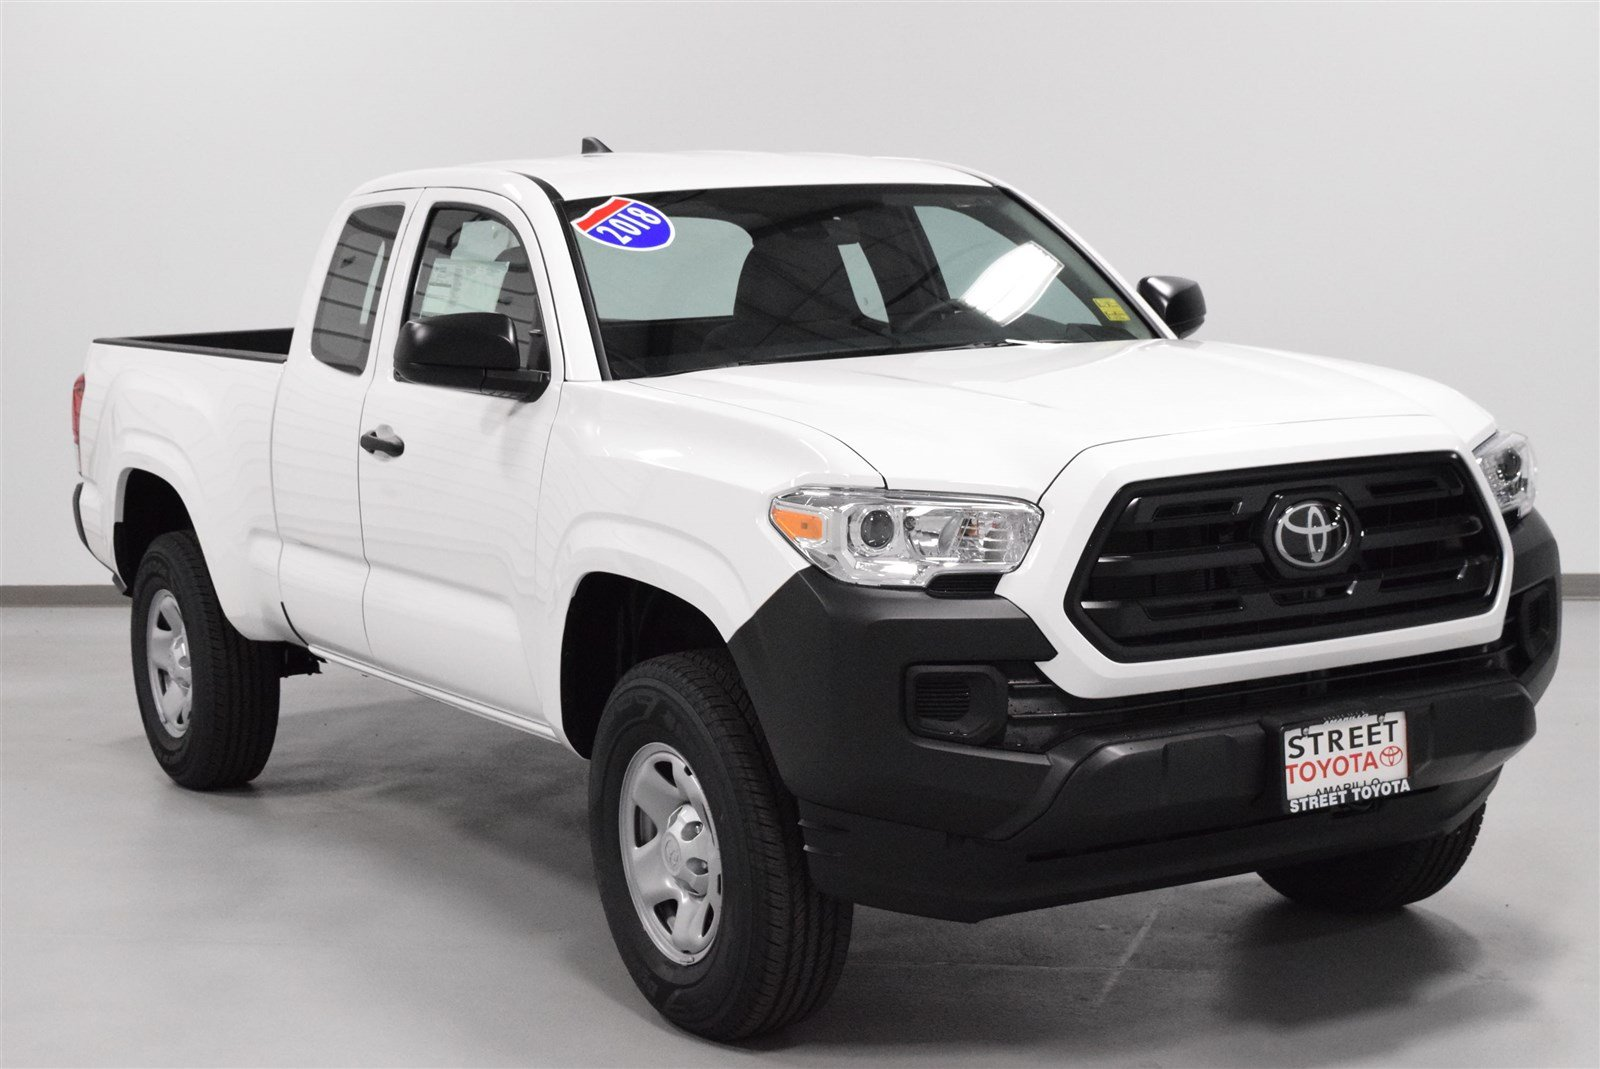 inventory new in escondido tocoma double rwd pickup toyota sr cab tacoma